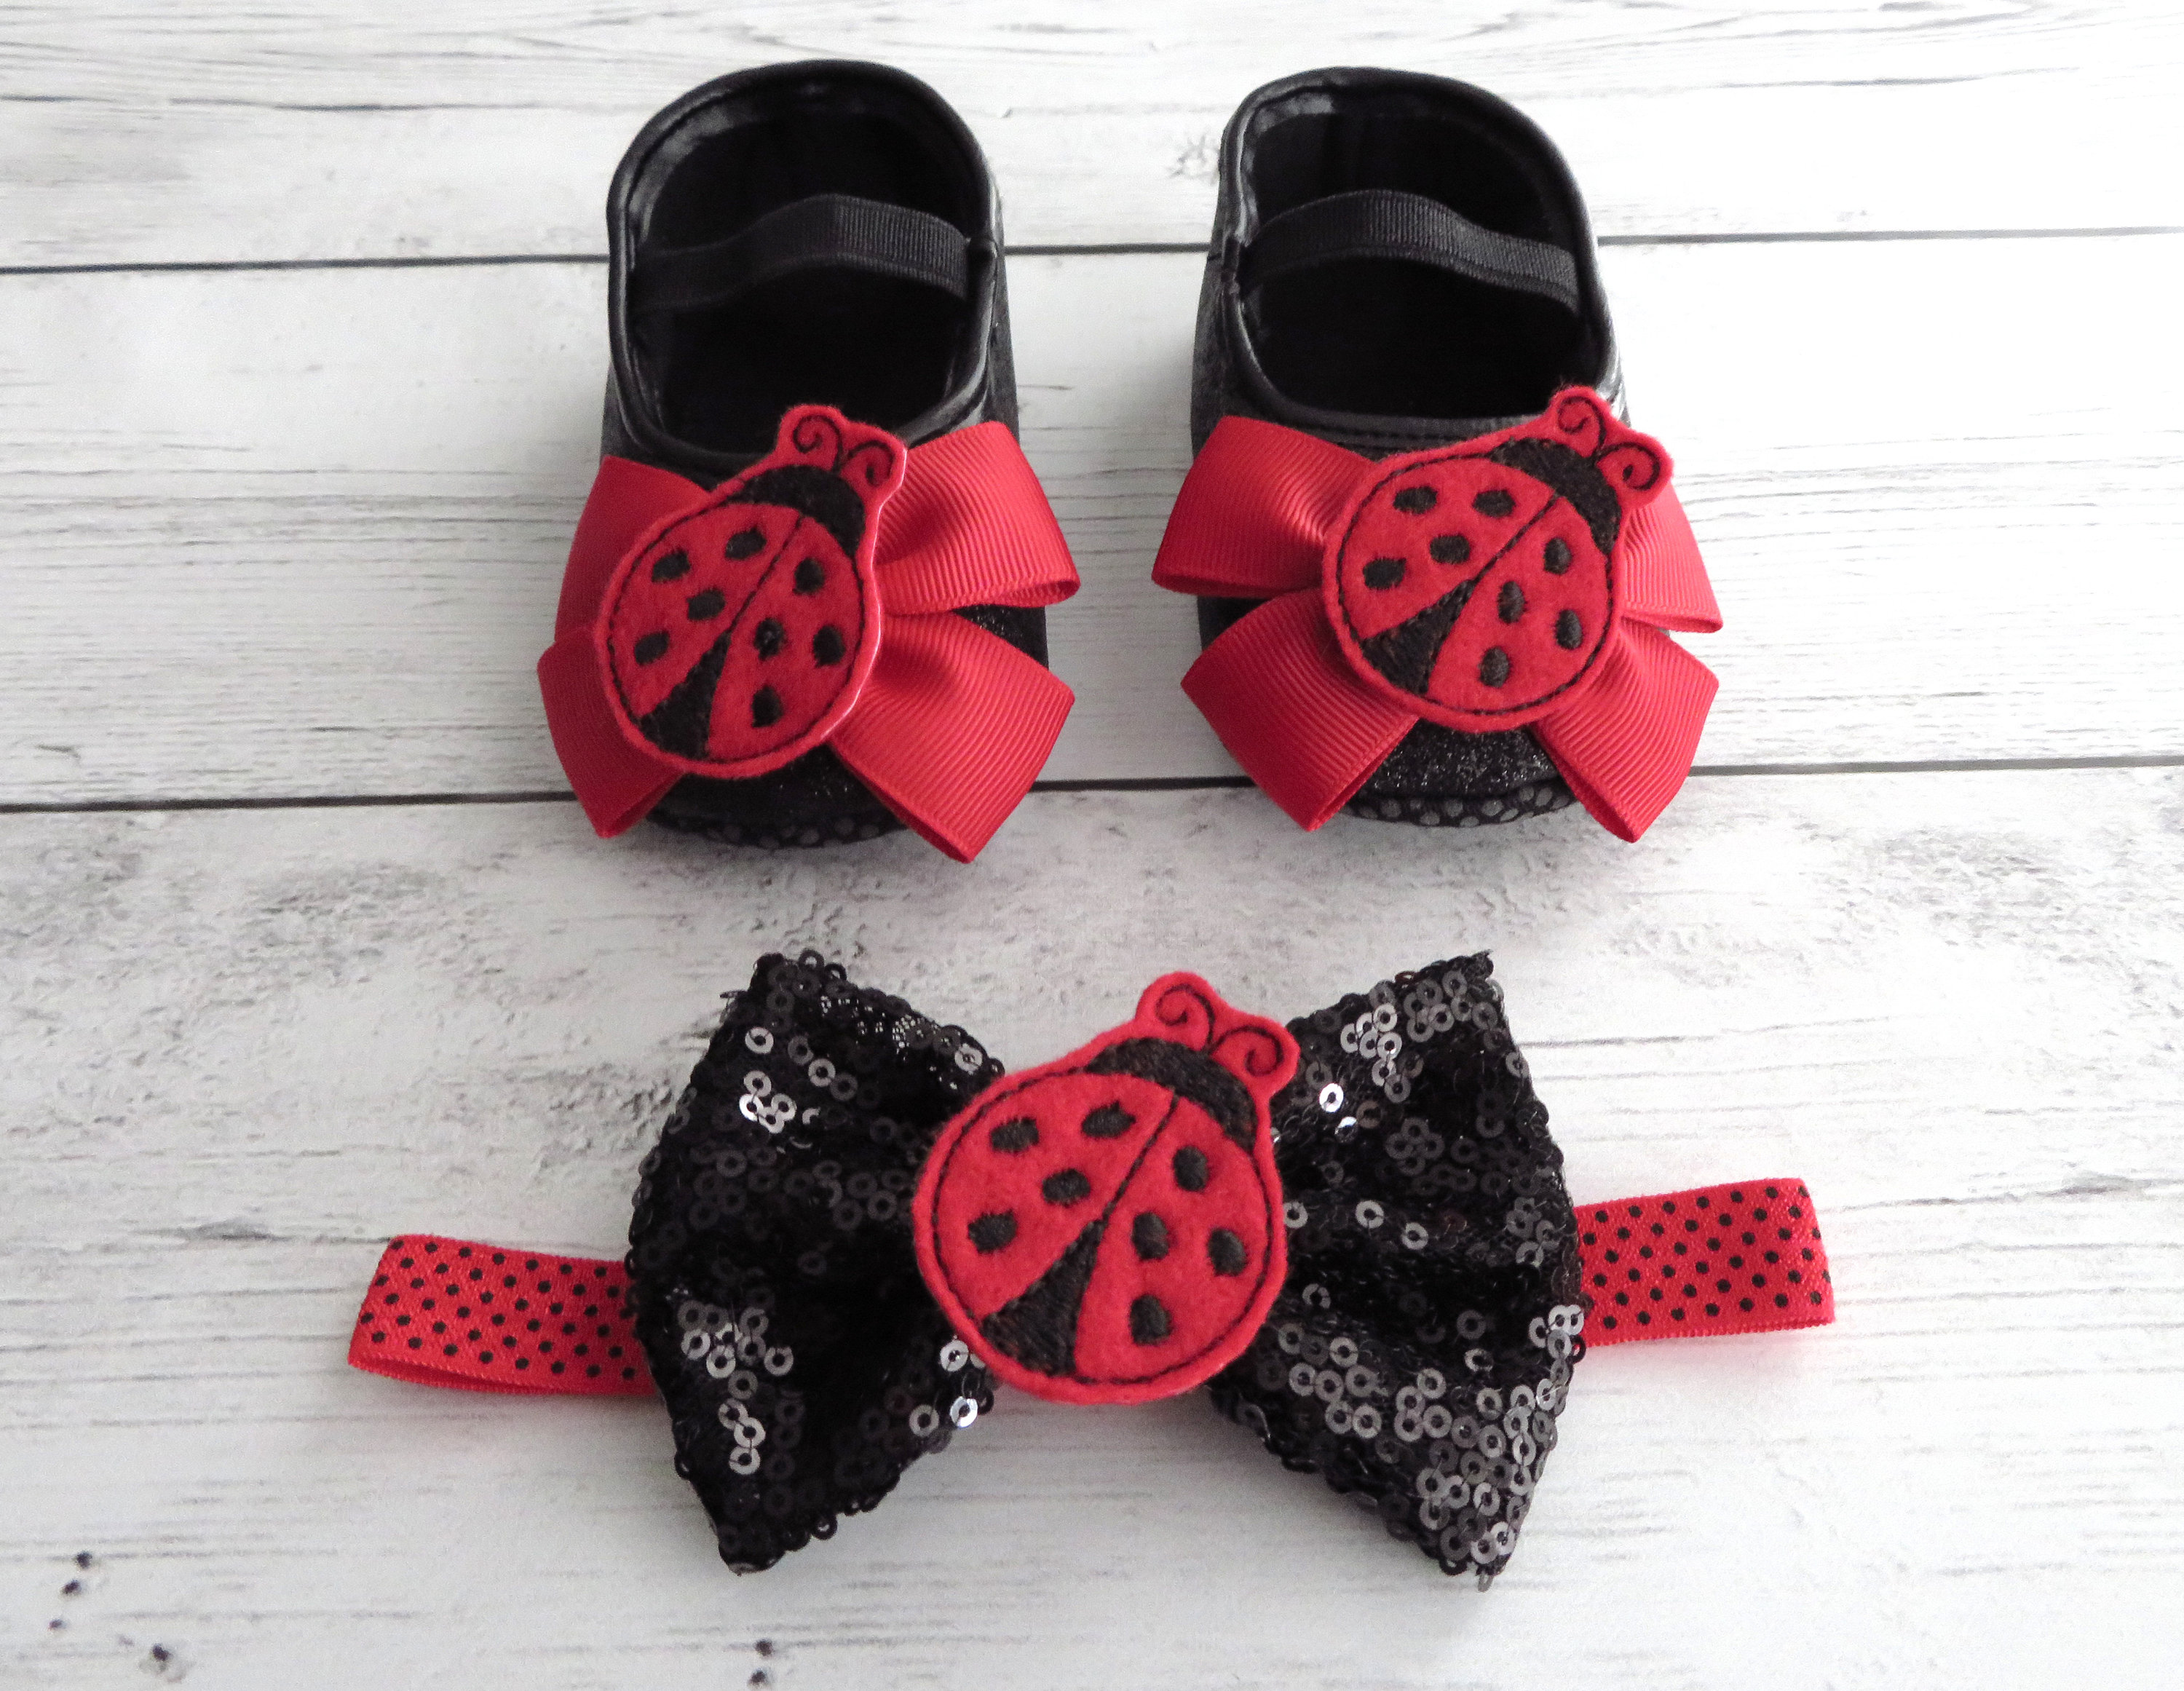 Ladybug First Birthday Shoes & Headband for Girl -  black glitter shoes, 1st bday shoes red black, lady bug birthday, ladybug 1st birthday